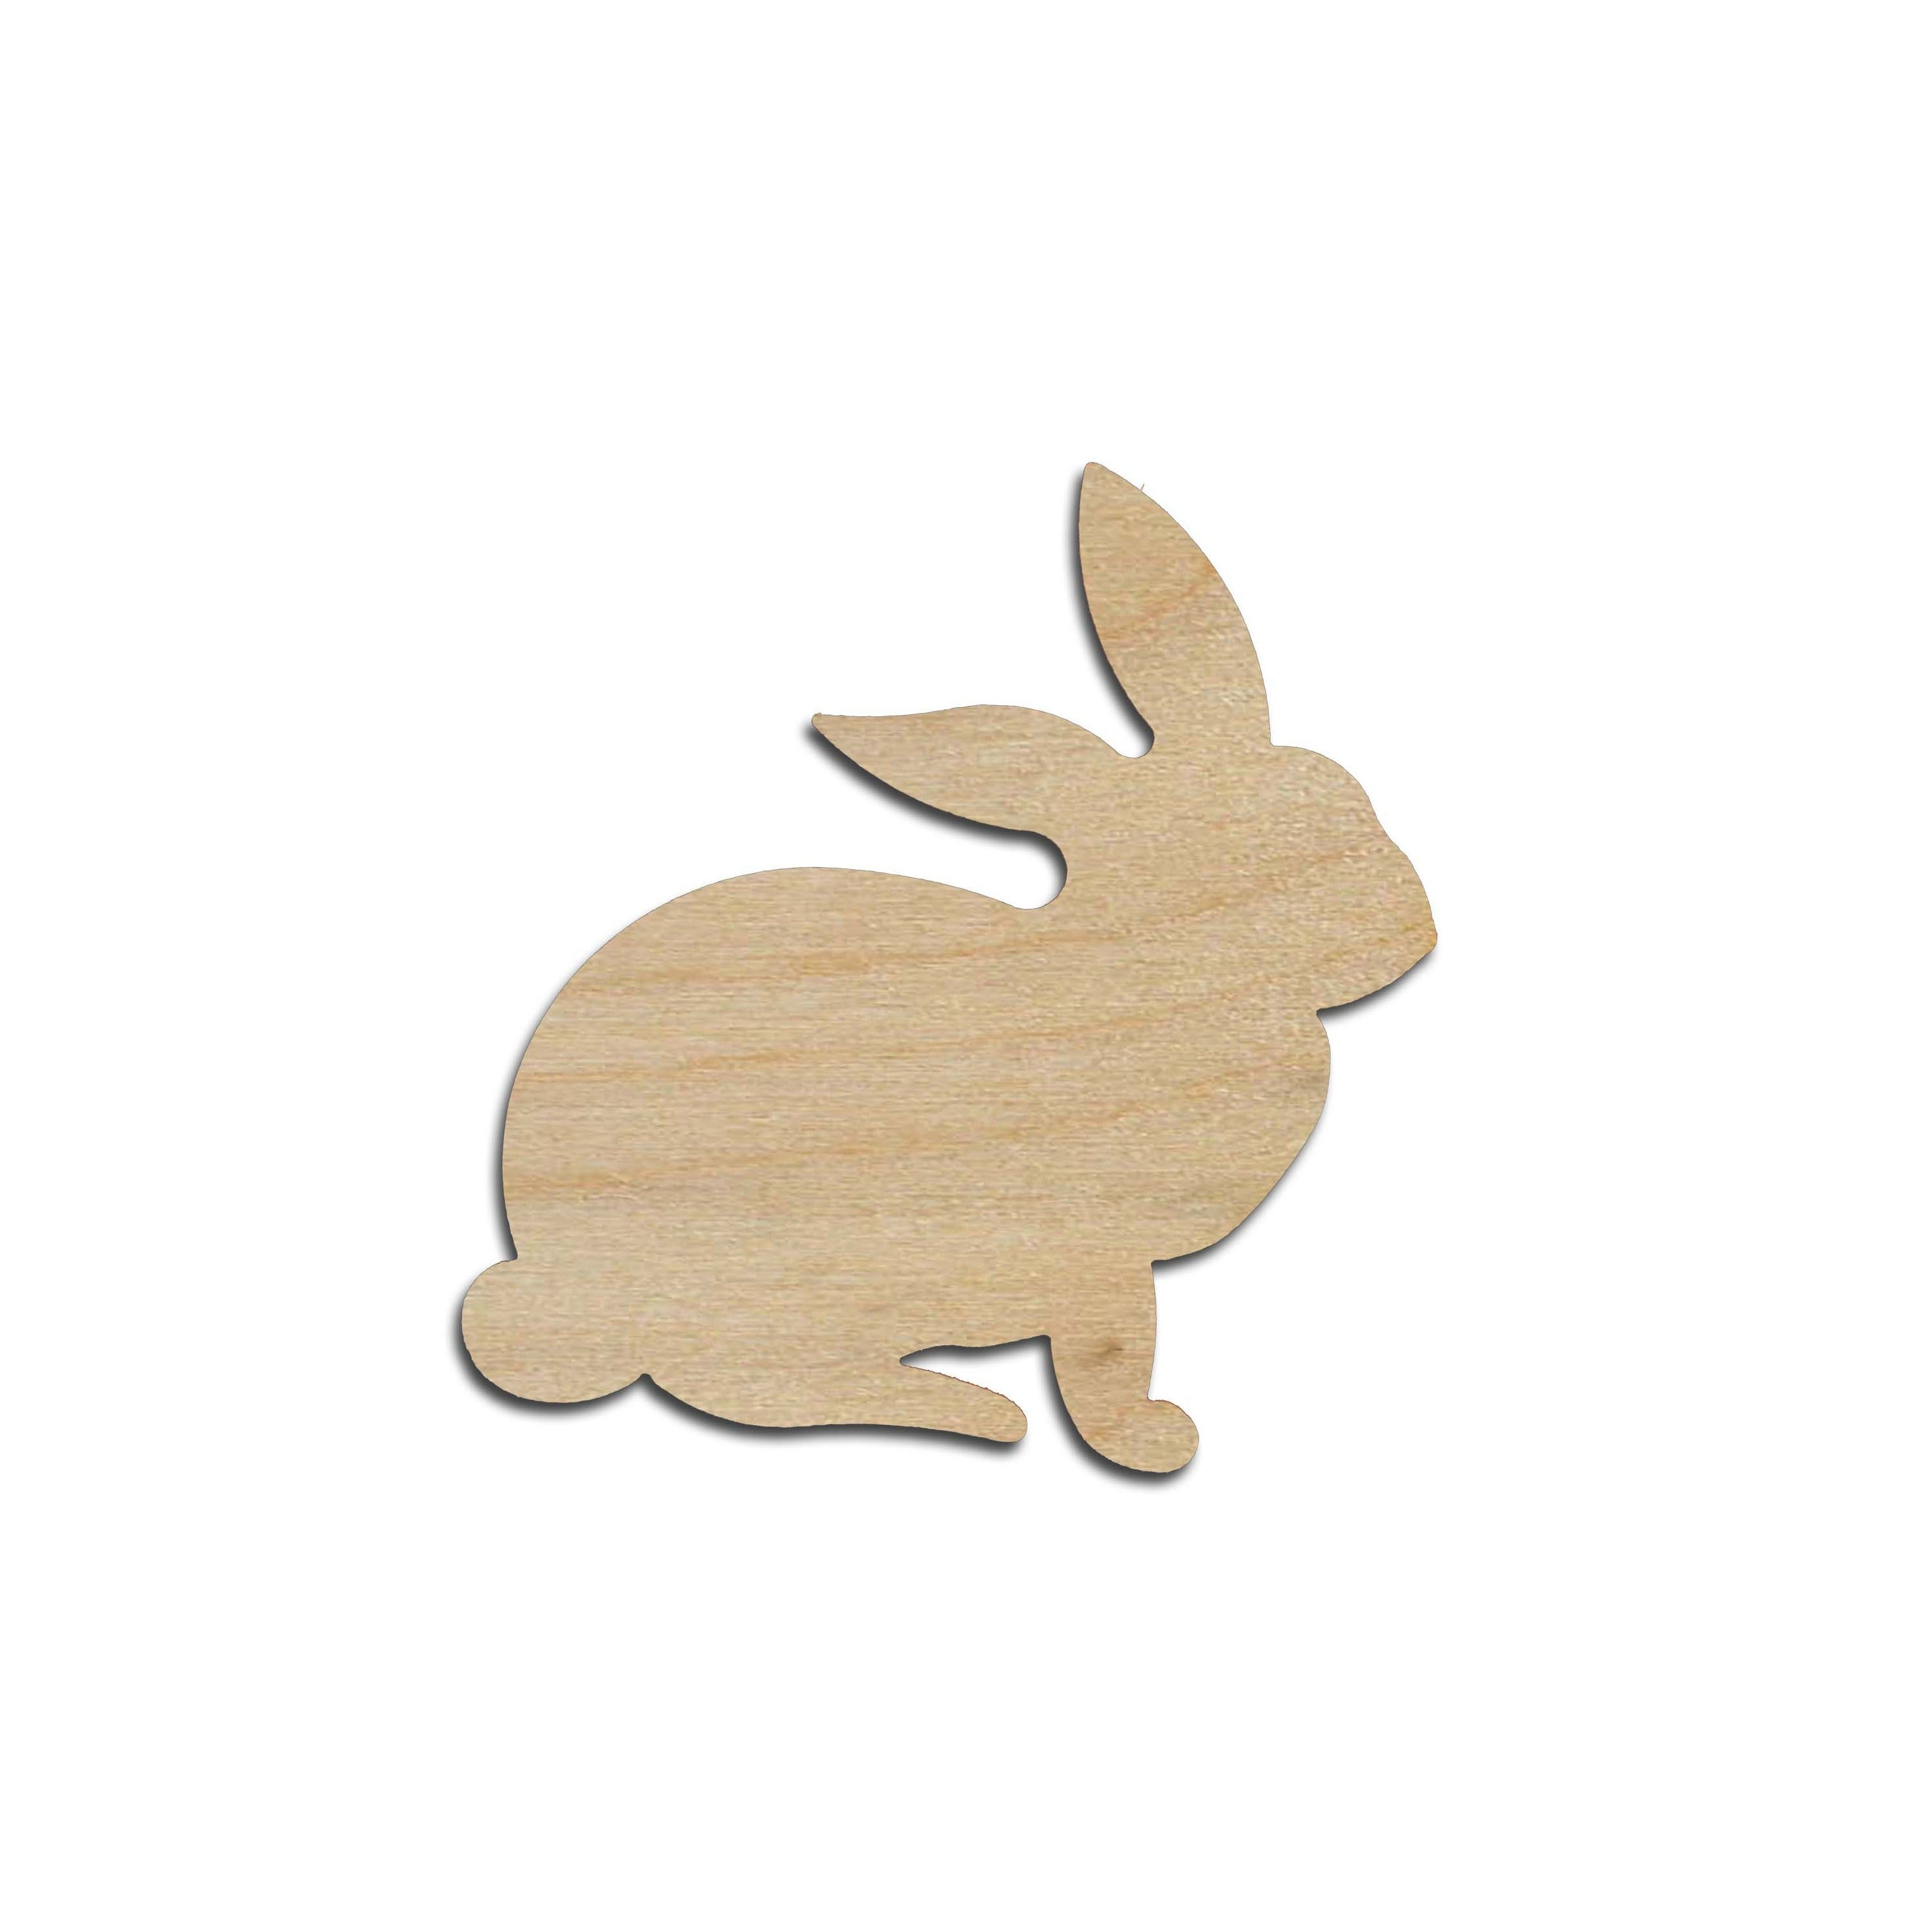 Rabbit Shape Wood Cut Out Unfinished Wooden Easter Bunny Animal